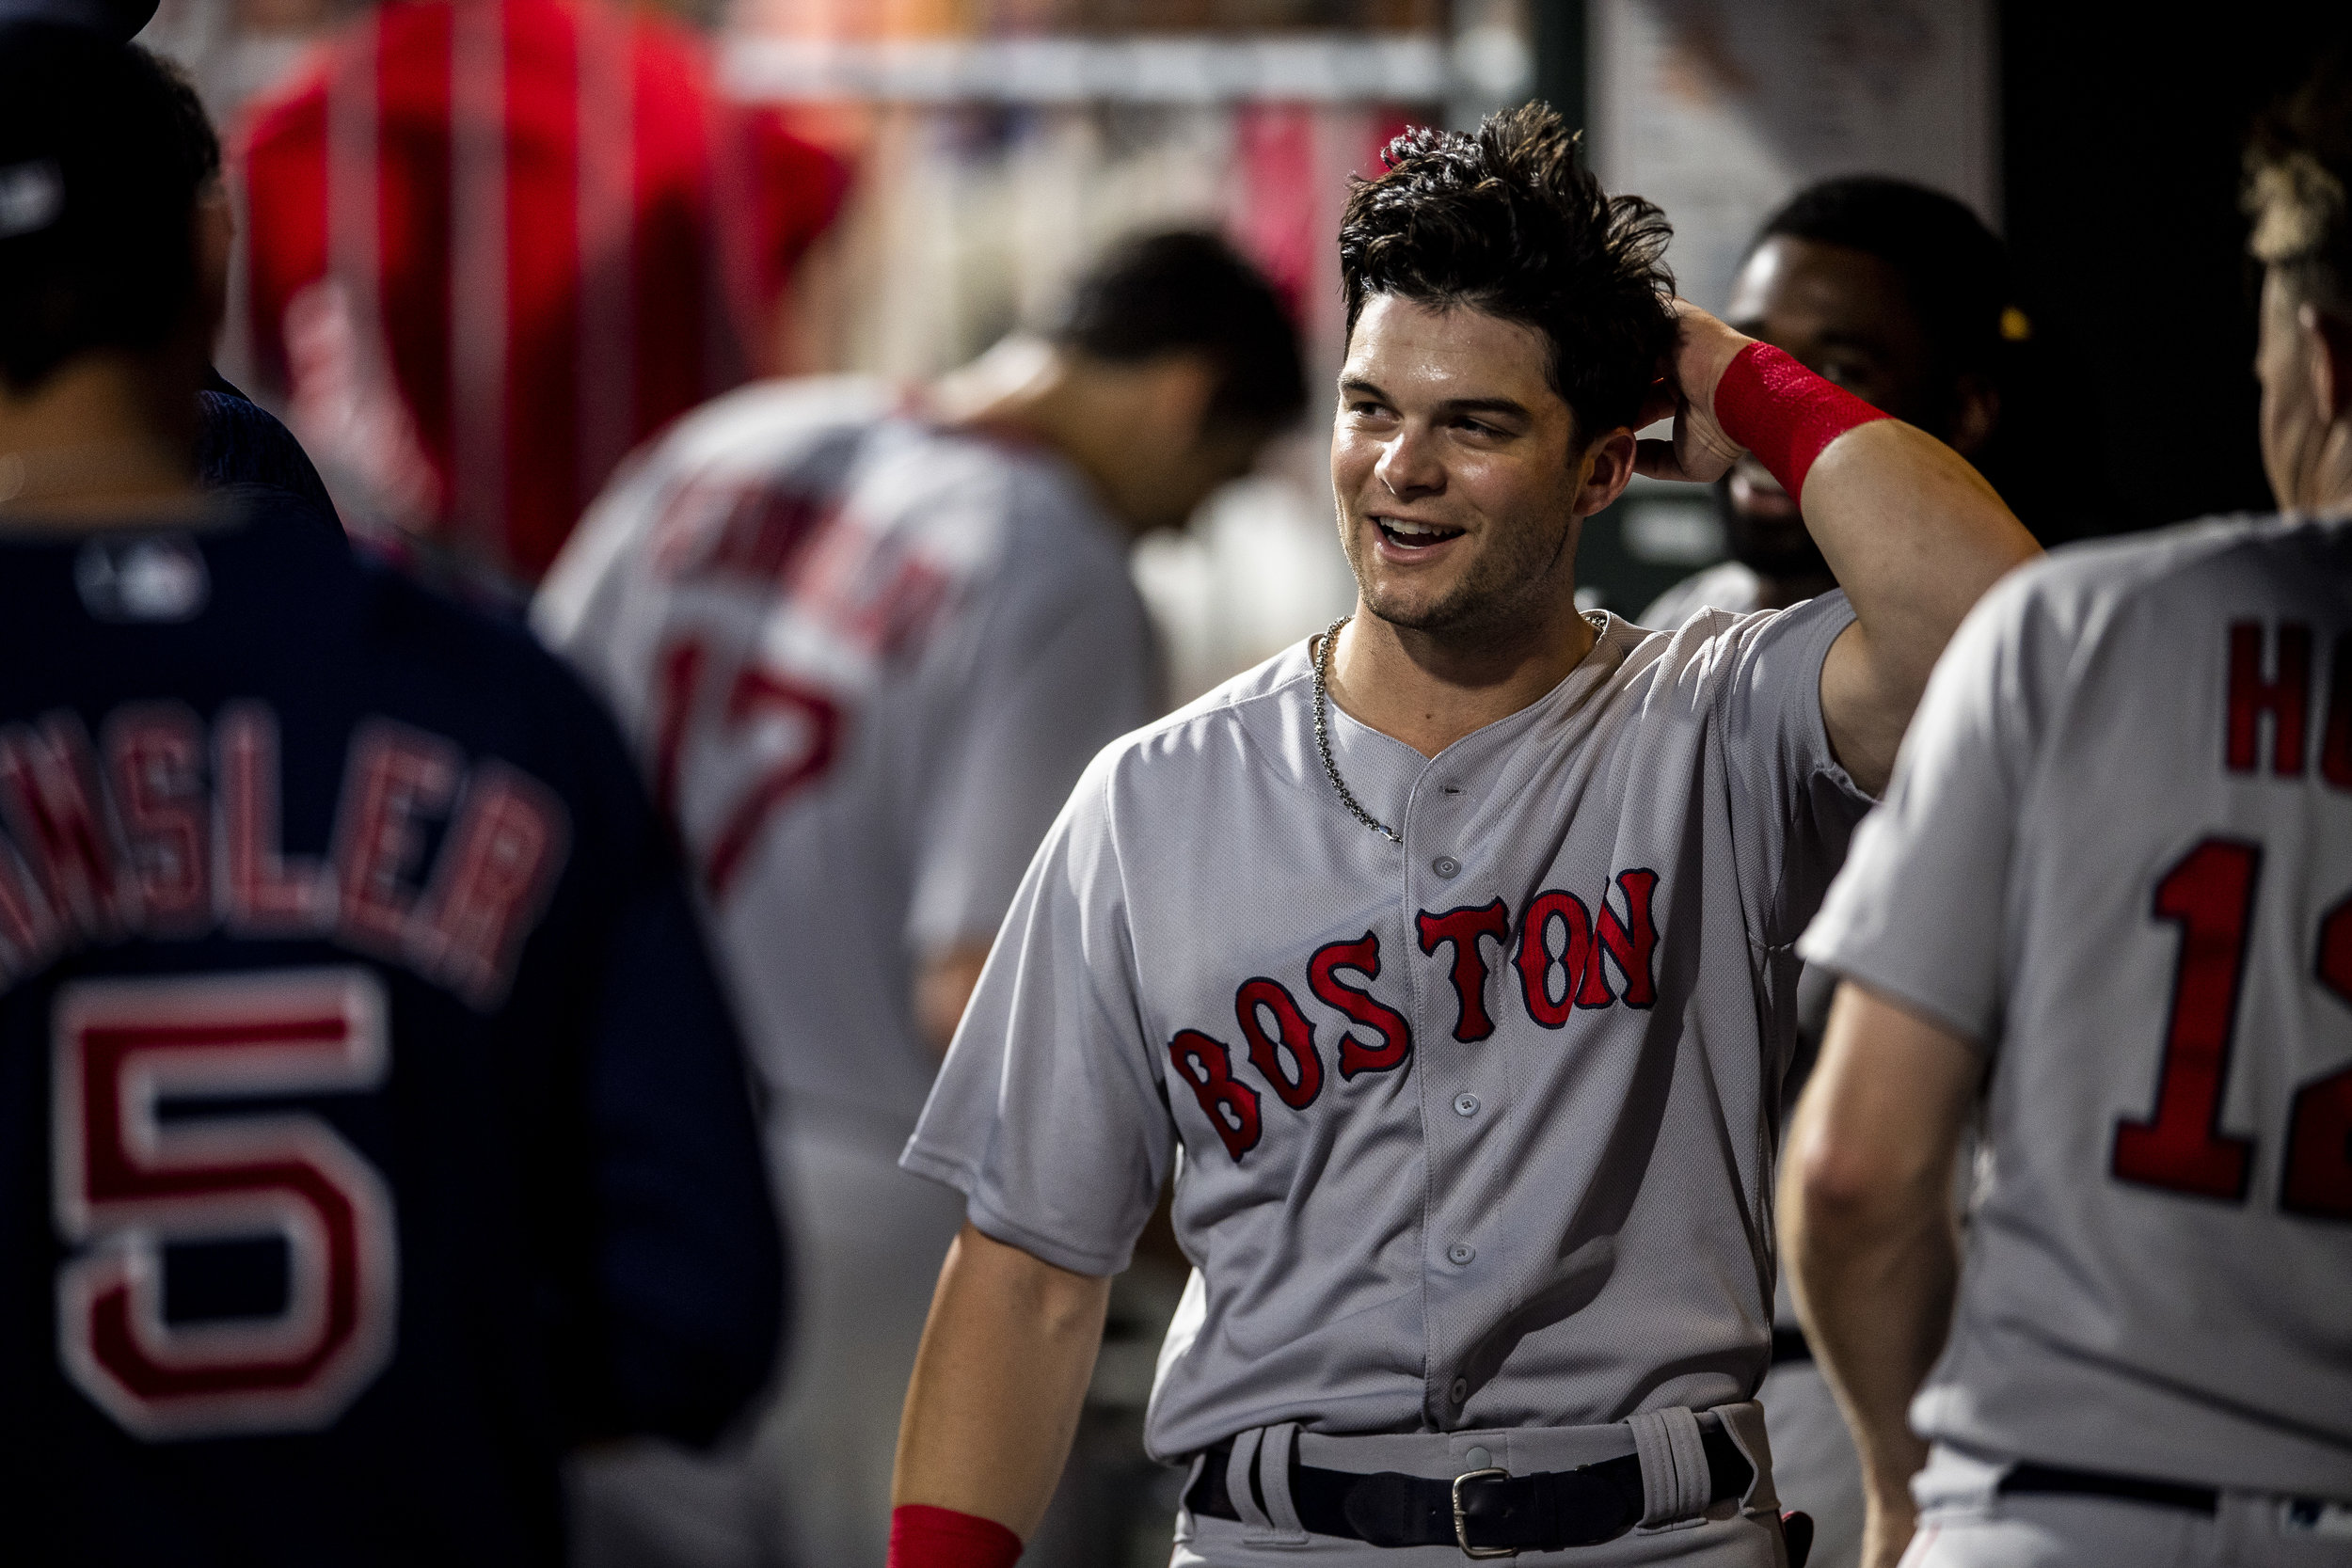 August 15, 2018, Philadelphia, PA: Boston Red Sox outfielder Andrew Benintendi pushes his hair back after celebrating score a run in the dugout as the Boston Red Sox face the Philadelphia Phillies at Citizen Bank Park in Philadelphia, Pennsylvania on Wednesday, August 15, 2018. (Photo by Matthew Thomas/Boston Red Sox)